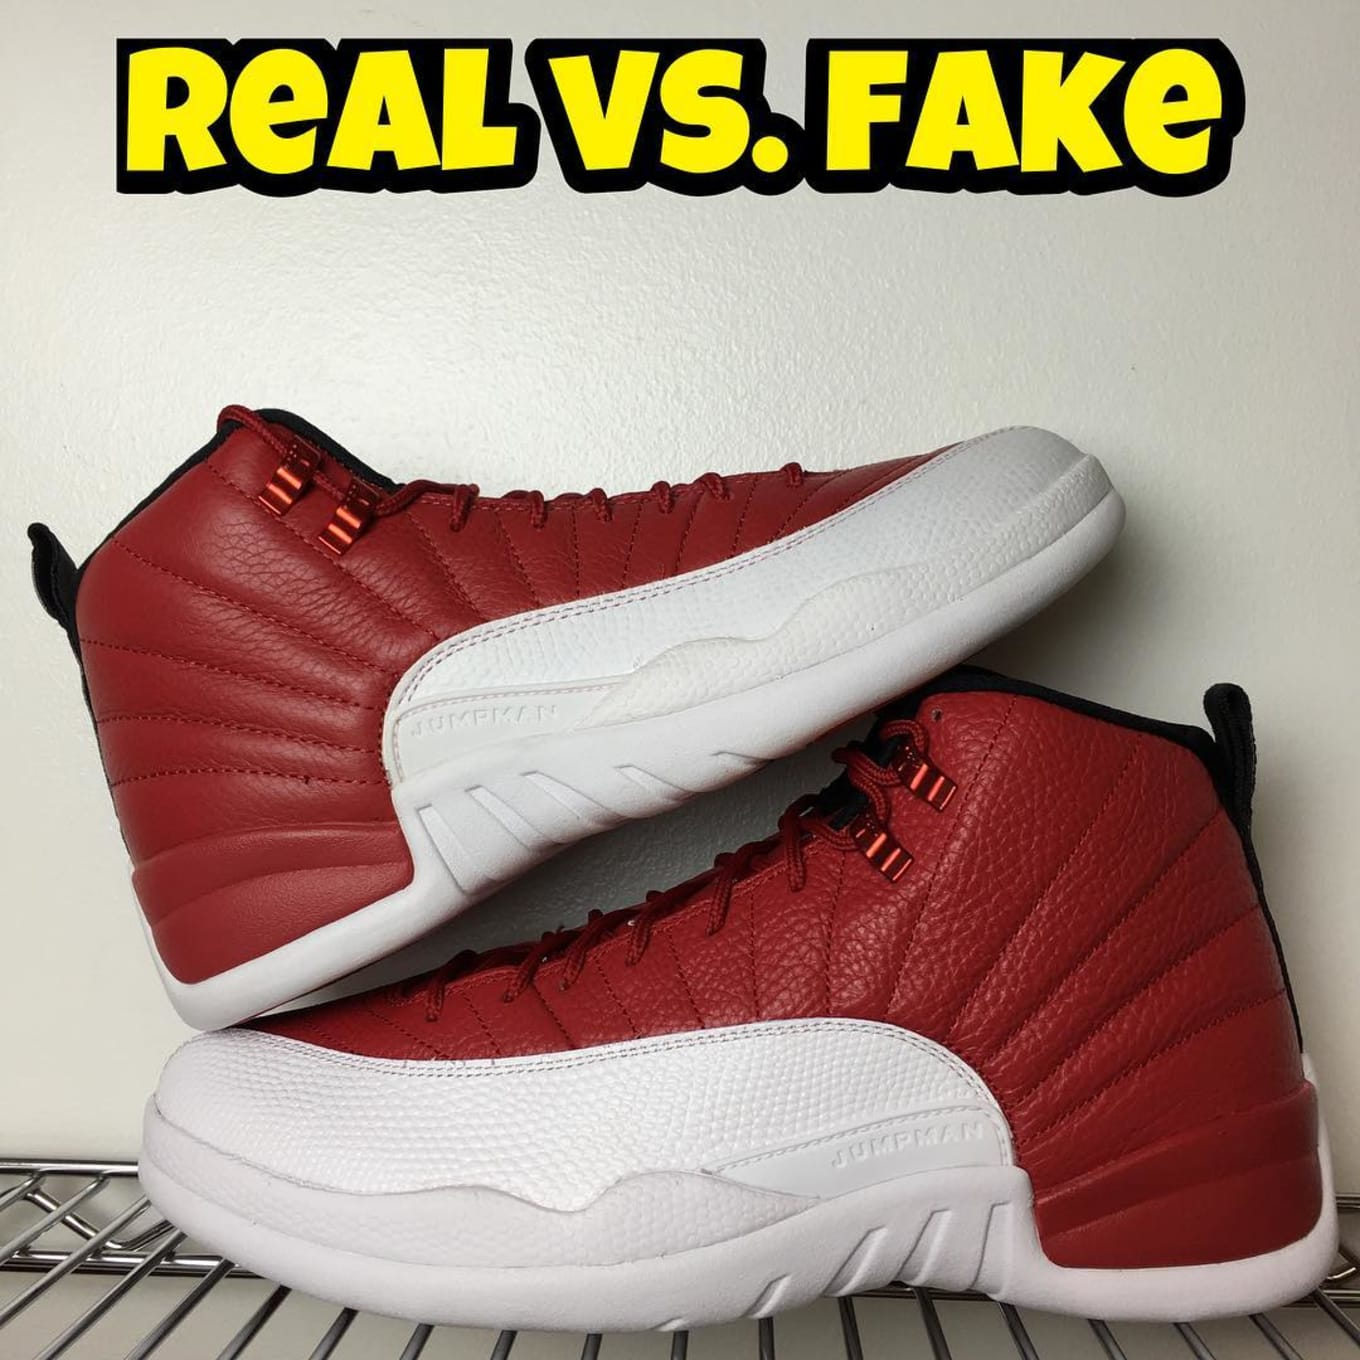 low cost f7b79 6abd9 Air Jordan XII 12 Gym Red Real Fake Legit Check | Sole Collector